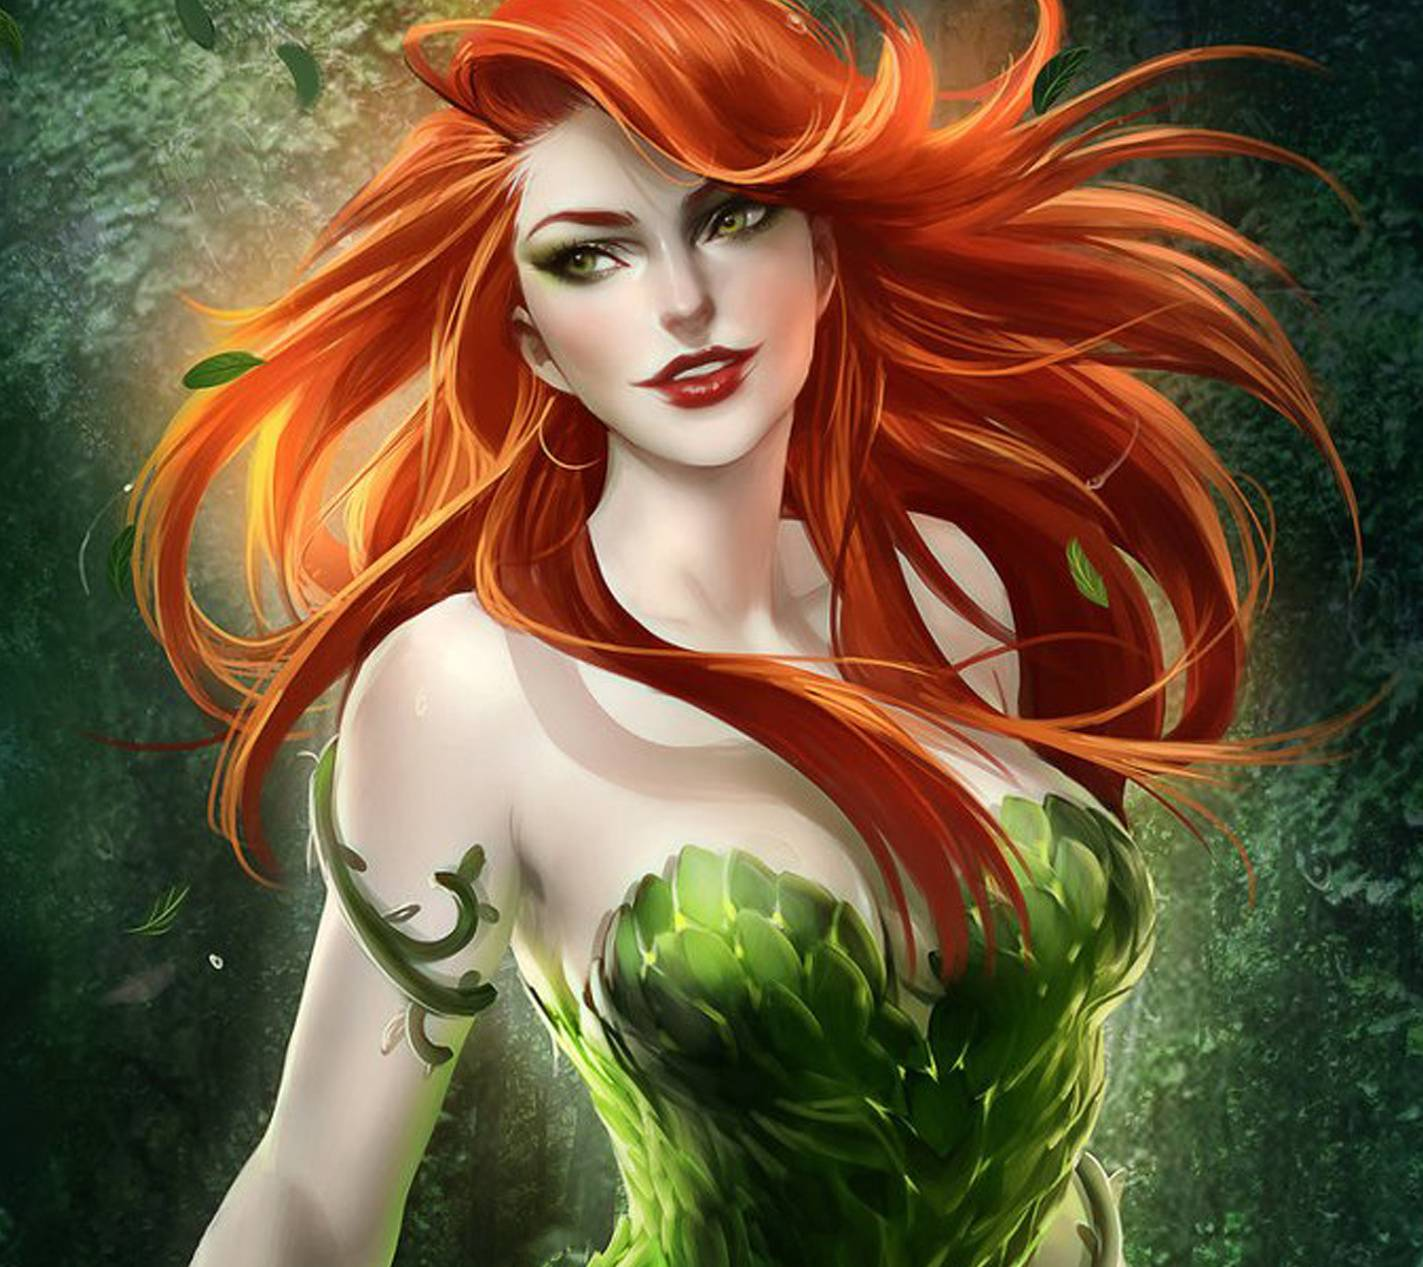 poison ivy wallpaper by zeusimages 65 free on zedge poison ivy wallpaper by zeusimages 65